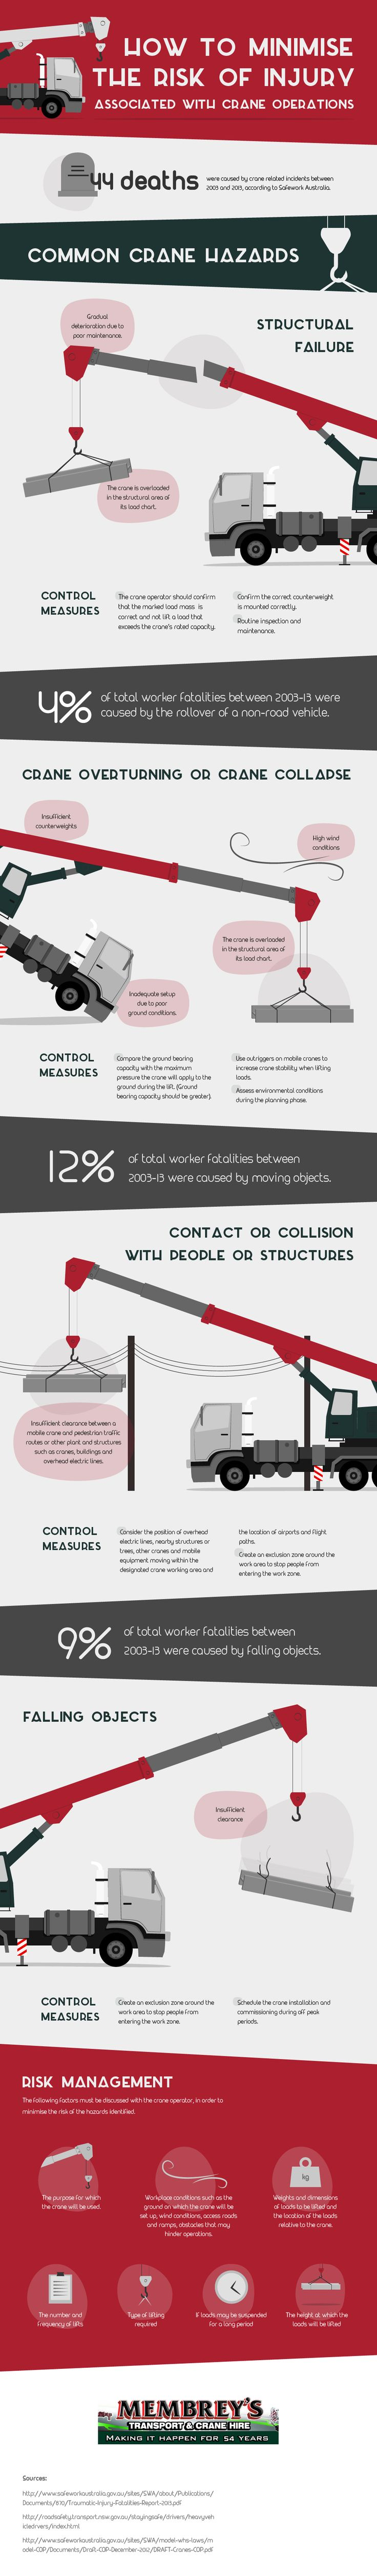 Membrey's have created a simplified guide which summarises the key hazards surrounding crane operations as well as the control measures that must be taken in order to minimise the risk of injury associated with crane operations. Proactively reviewing and discussing these factors will help to prevent tragic accidents from occurring.